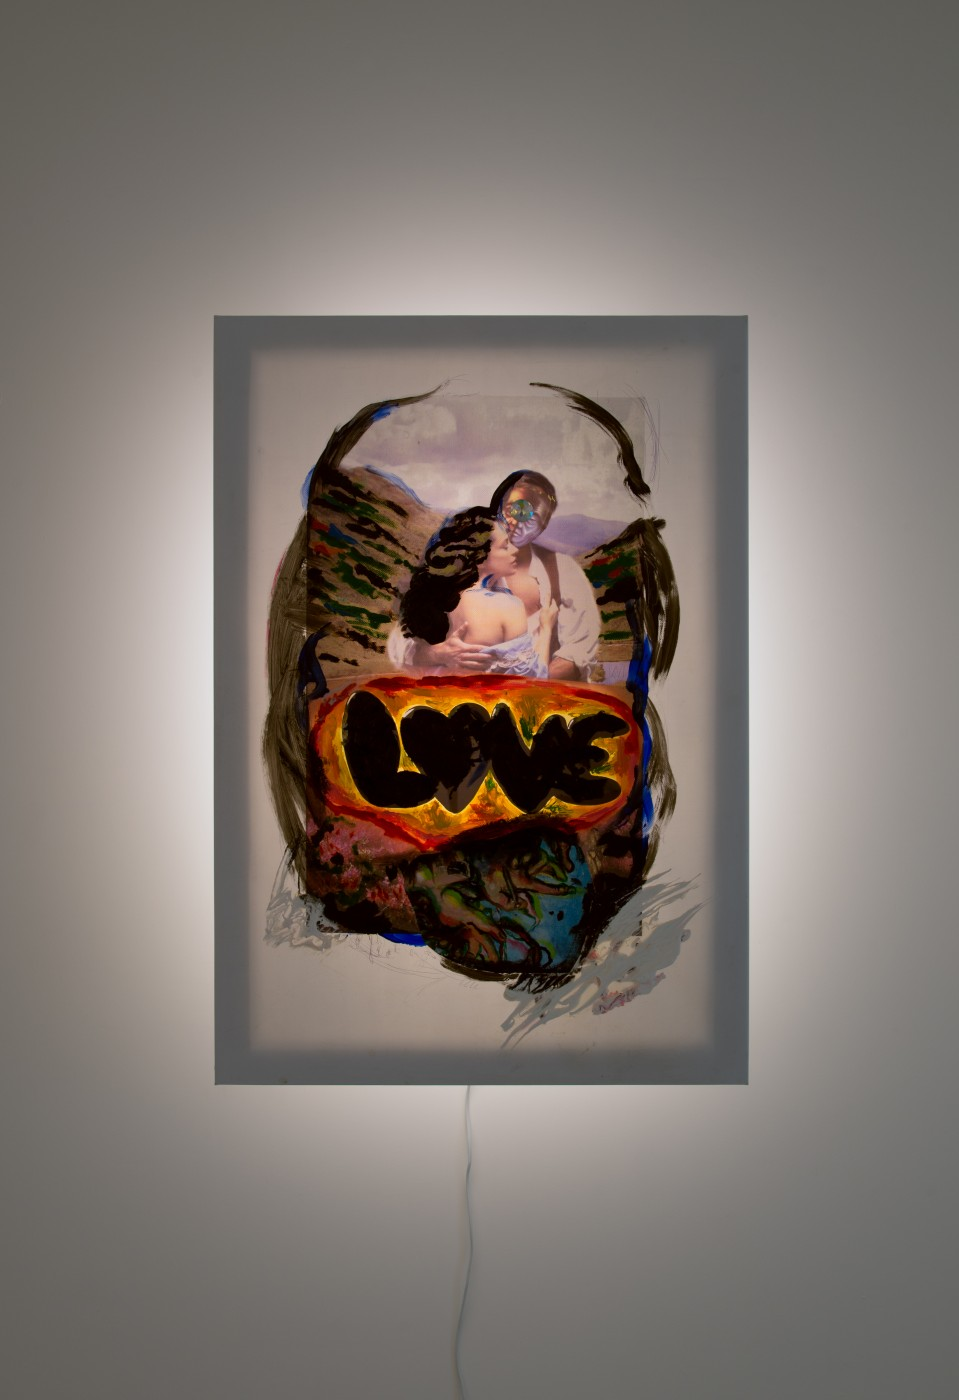 GOLD  Love</I>, 2017 Acrylic, oil and inkjet on vinyl, marker pen, acrylic iridescent gem, wood, steel, LED light 100 x 69 x 21 cm / 39.3 x 27.1 x 8.2 in  JOHN RUSSELL